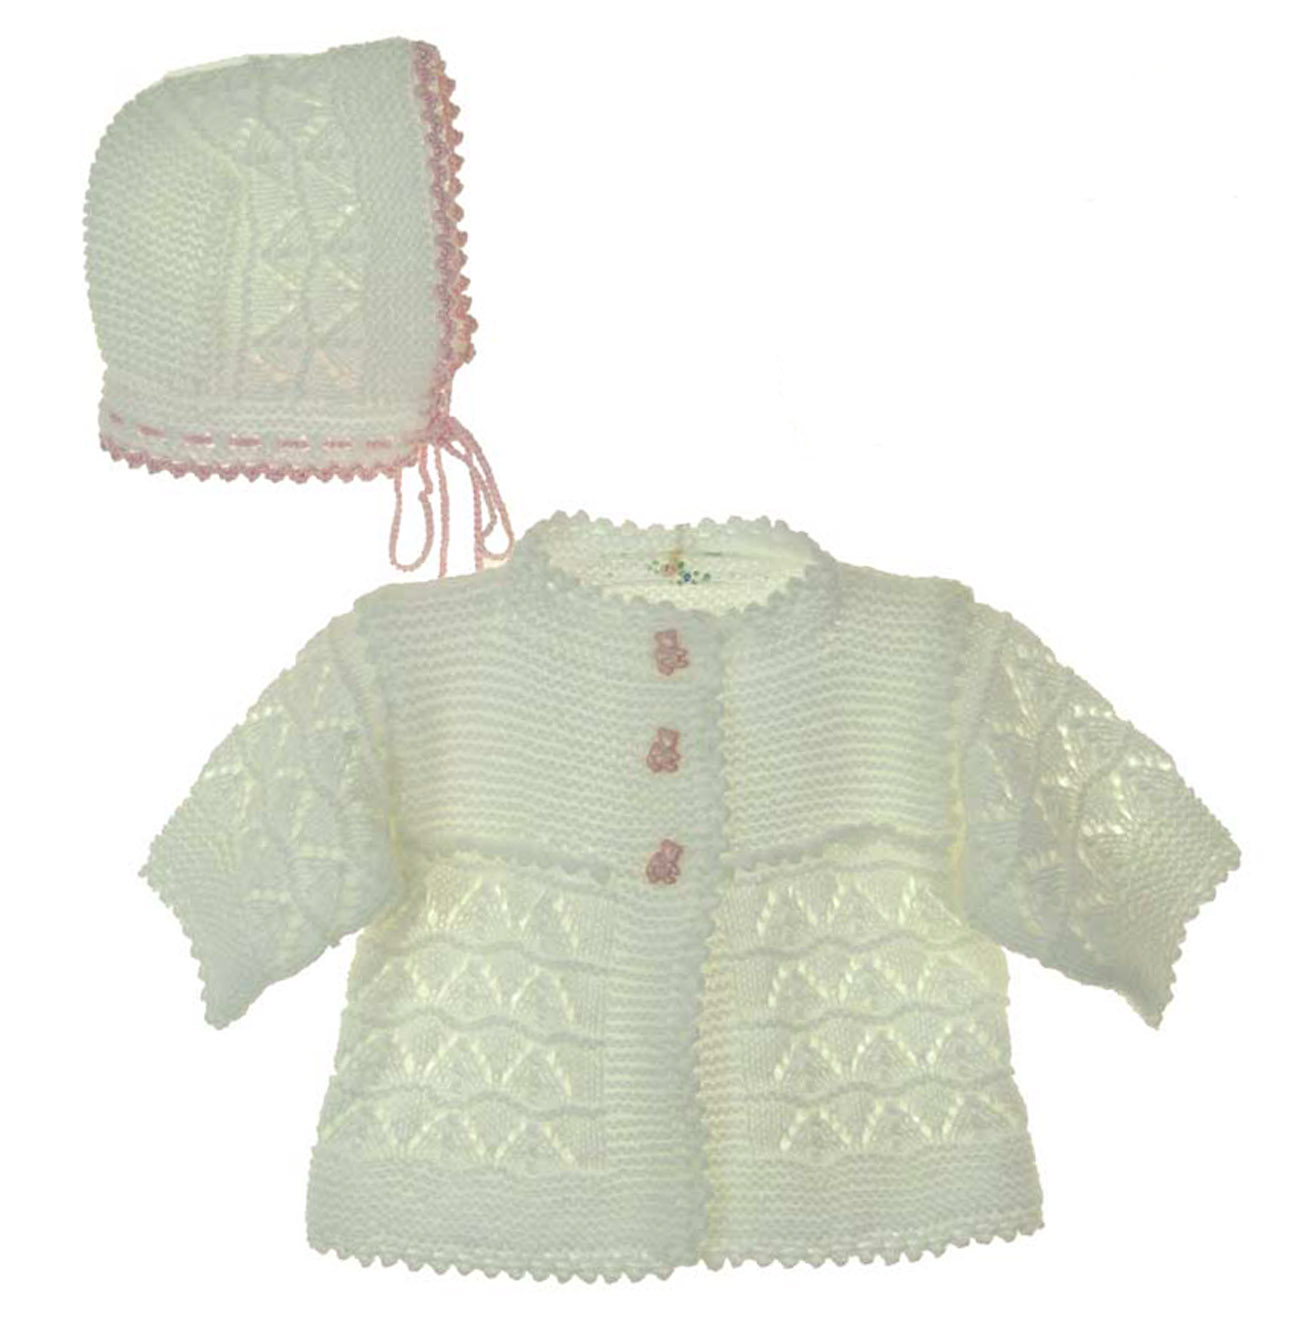 762239272 white hand crocheted sweater and hat with teddy bear buttons